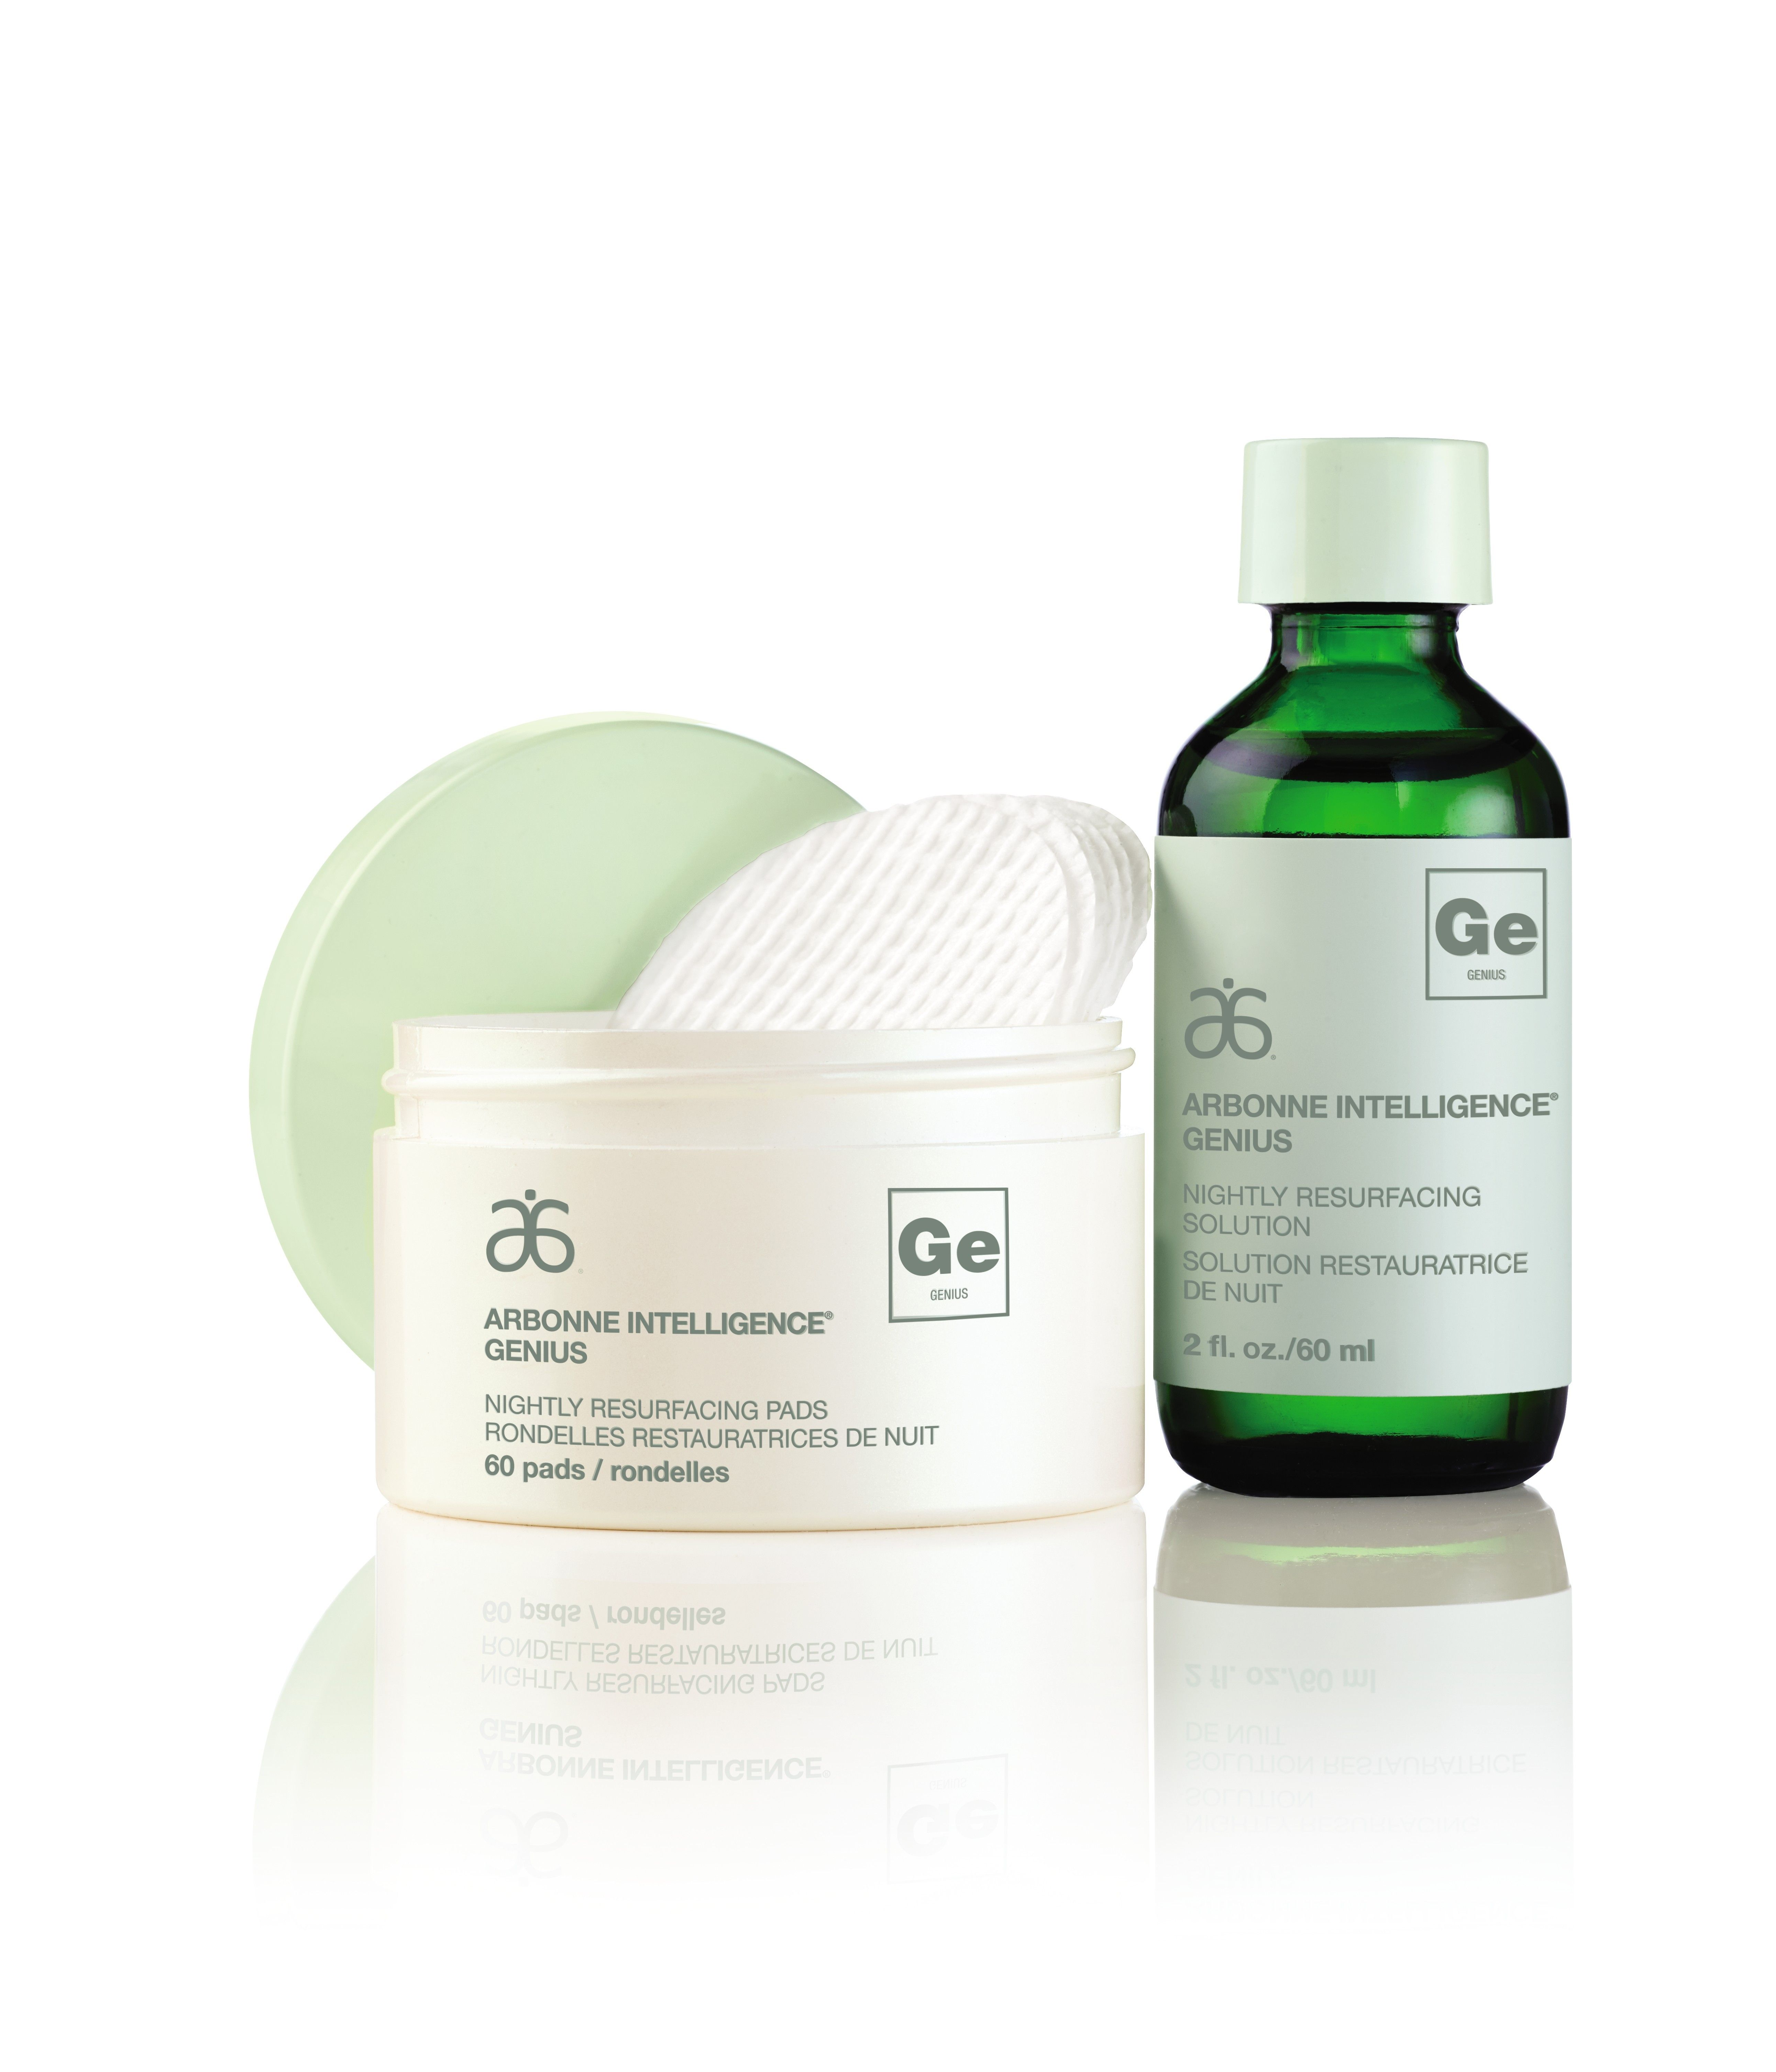 Arbonne Introduces a Skin Care Breakthrough (With images